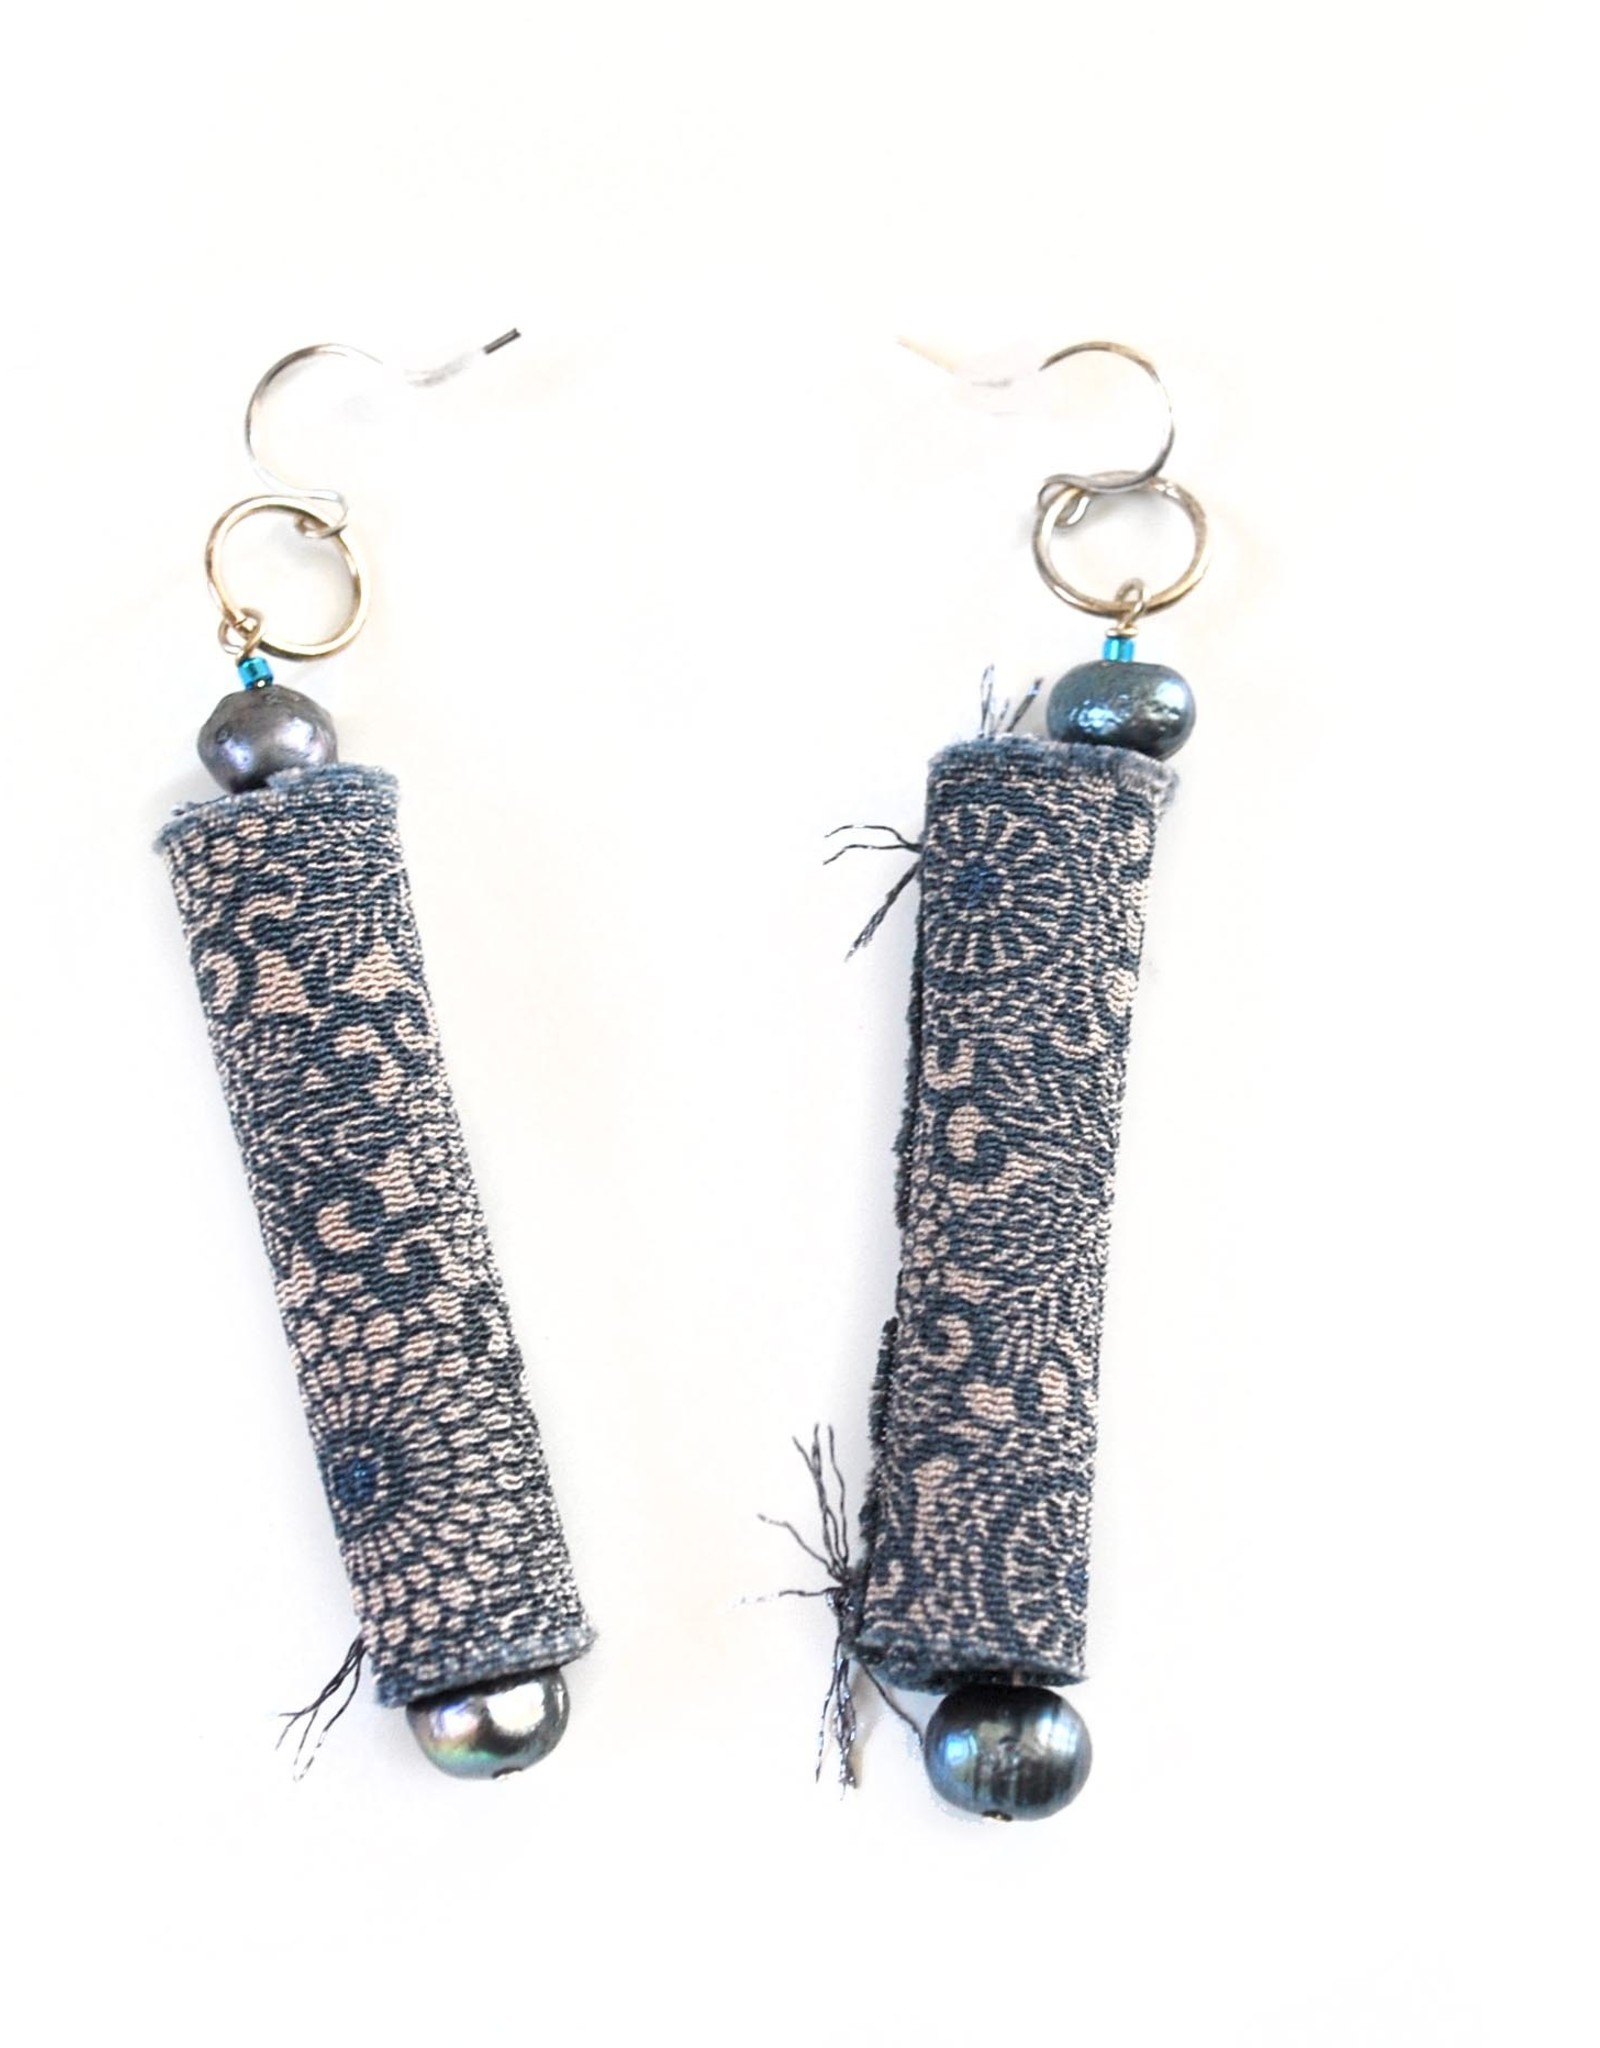 Silk Earrings with Pearls by Jason Hall